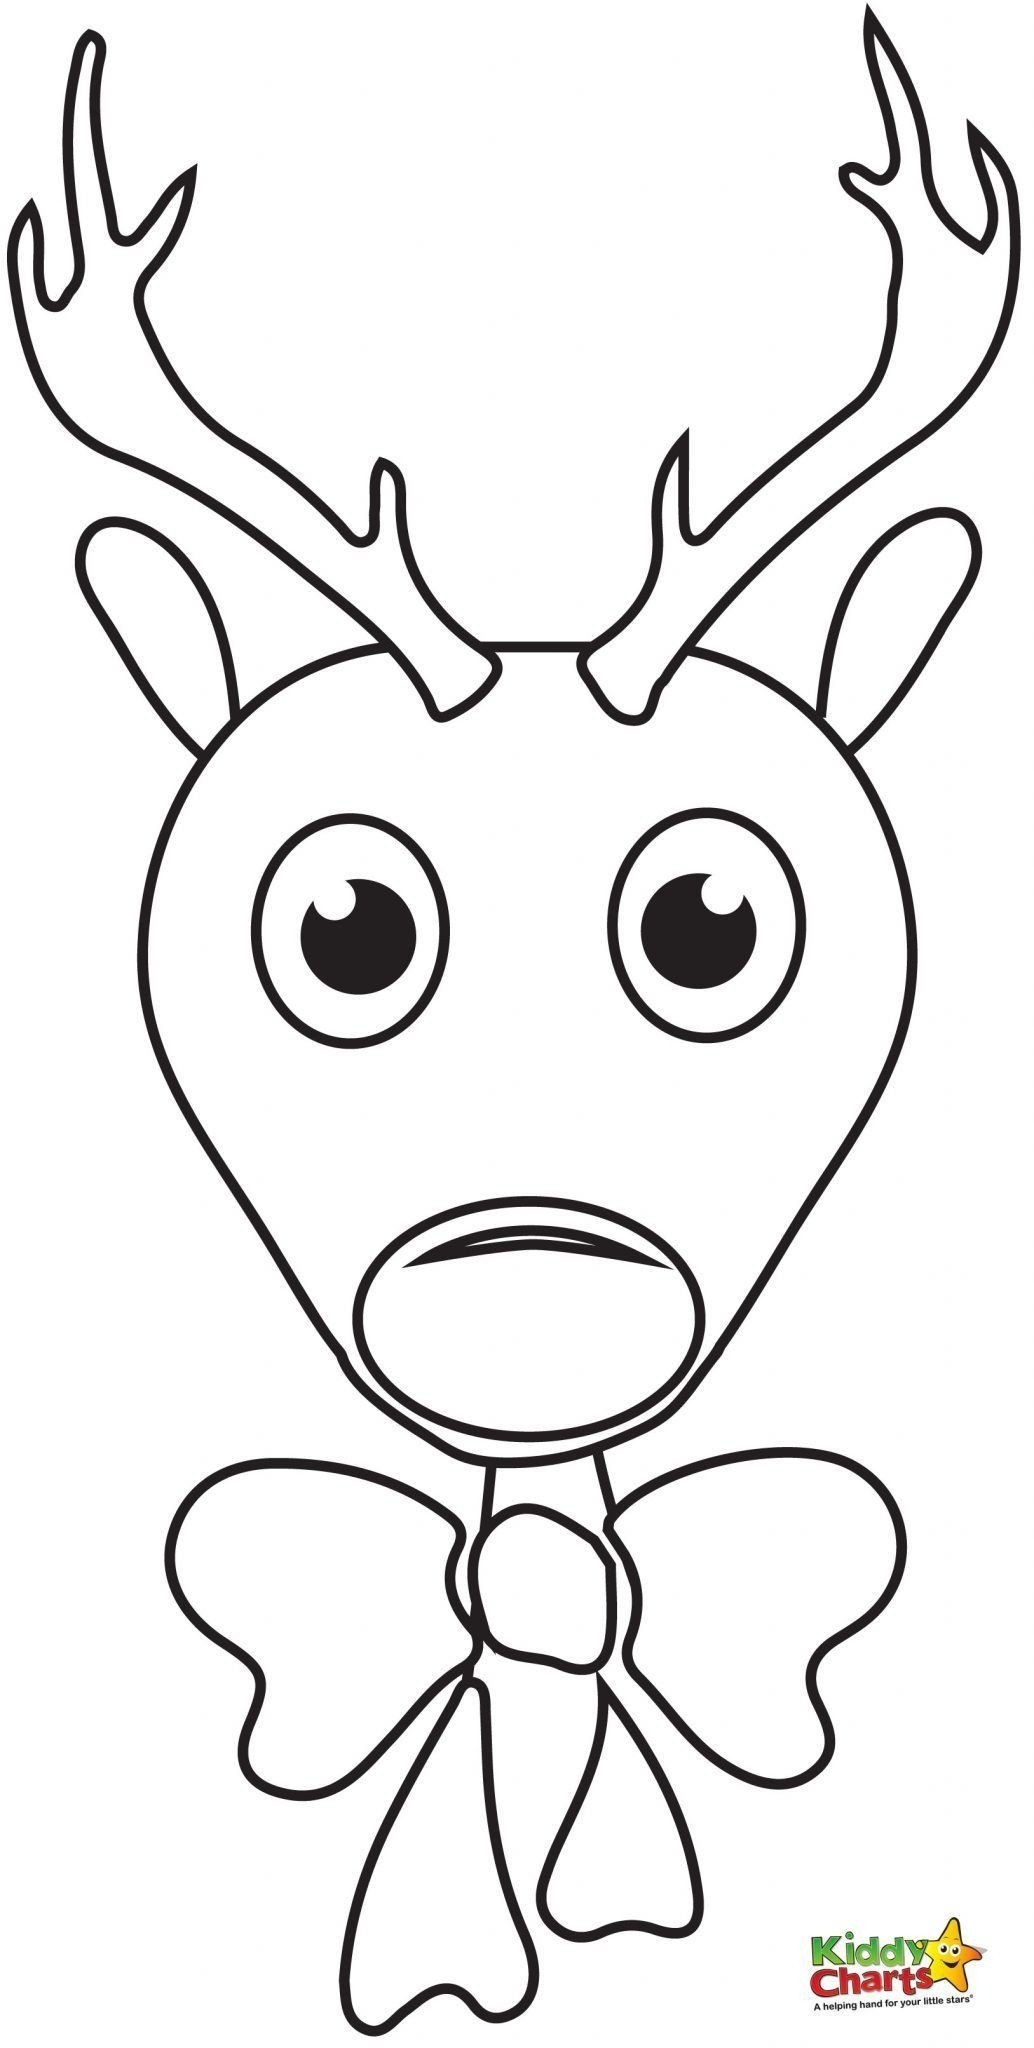 1034x2048 Reindeer Coloring Pages Cartoon Christmas Page Free Printable